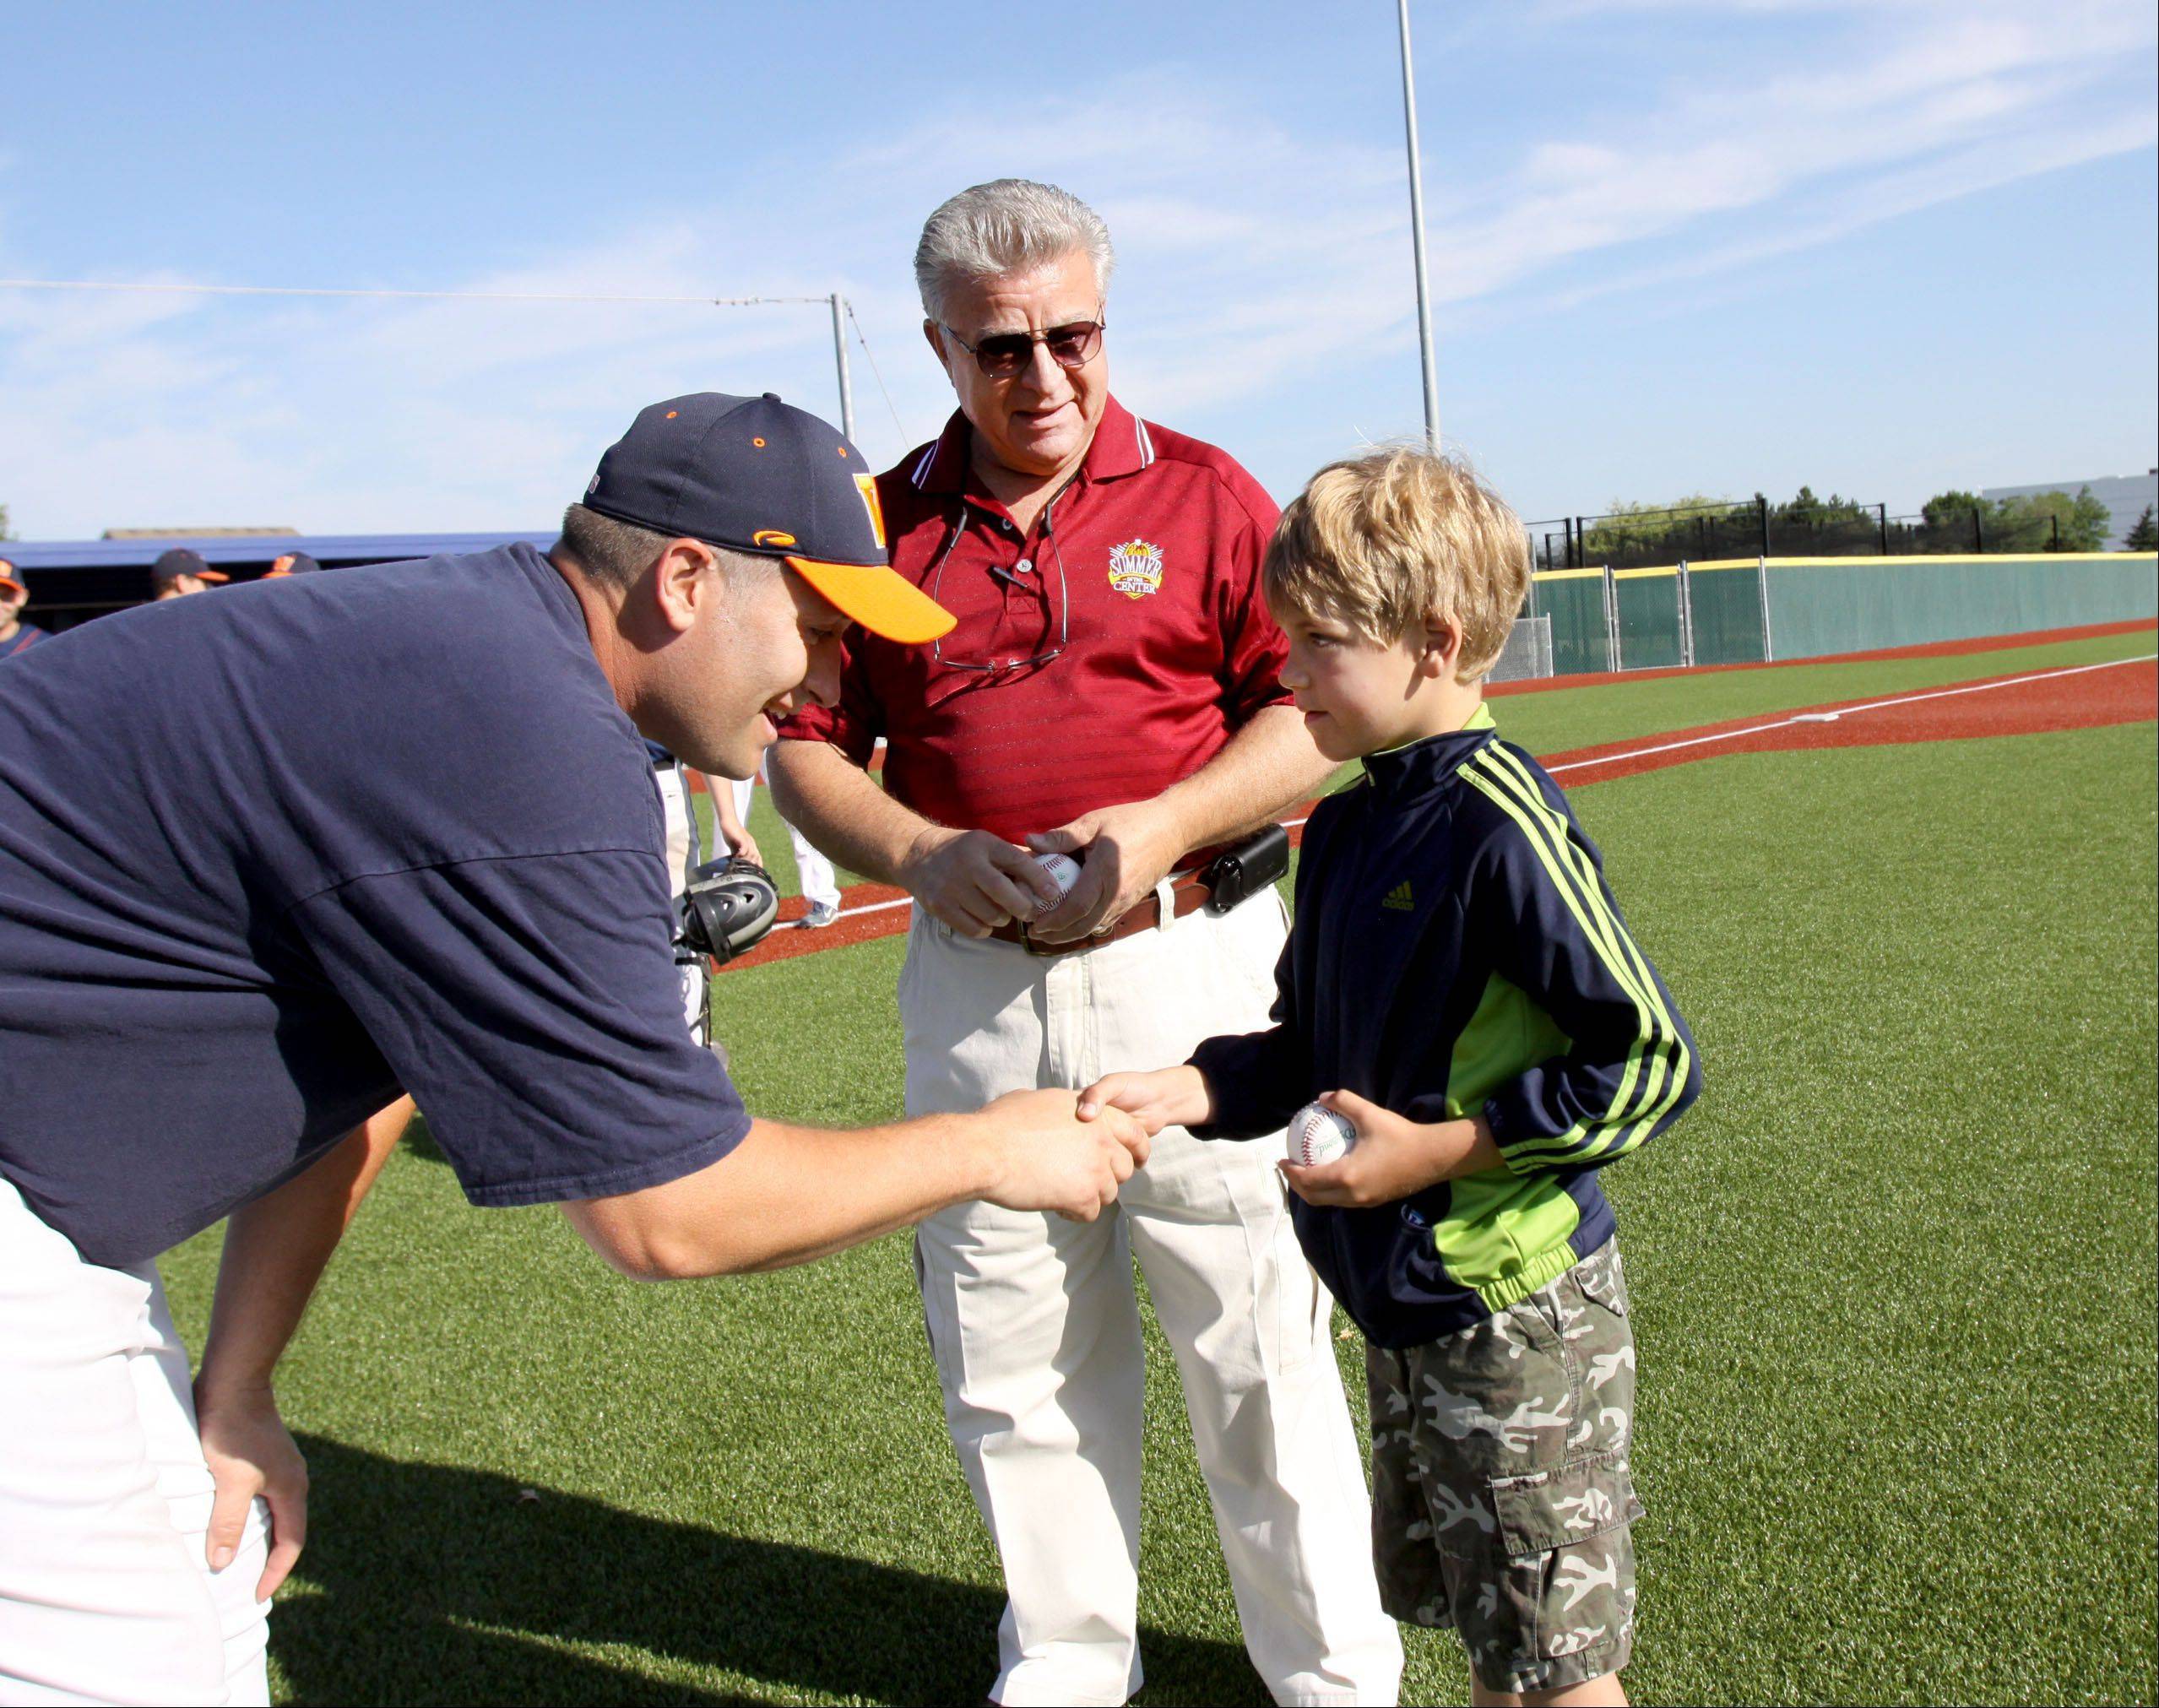 Carol Stream Village President Frank Saverino and his 7-year-old grandson, Dominic, talk with American Legion Post 76 baseball team head coach Jerry Miller Friday after throwing out ceremonial first pitches at the opening of the post's Summer Classic Tournament.